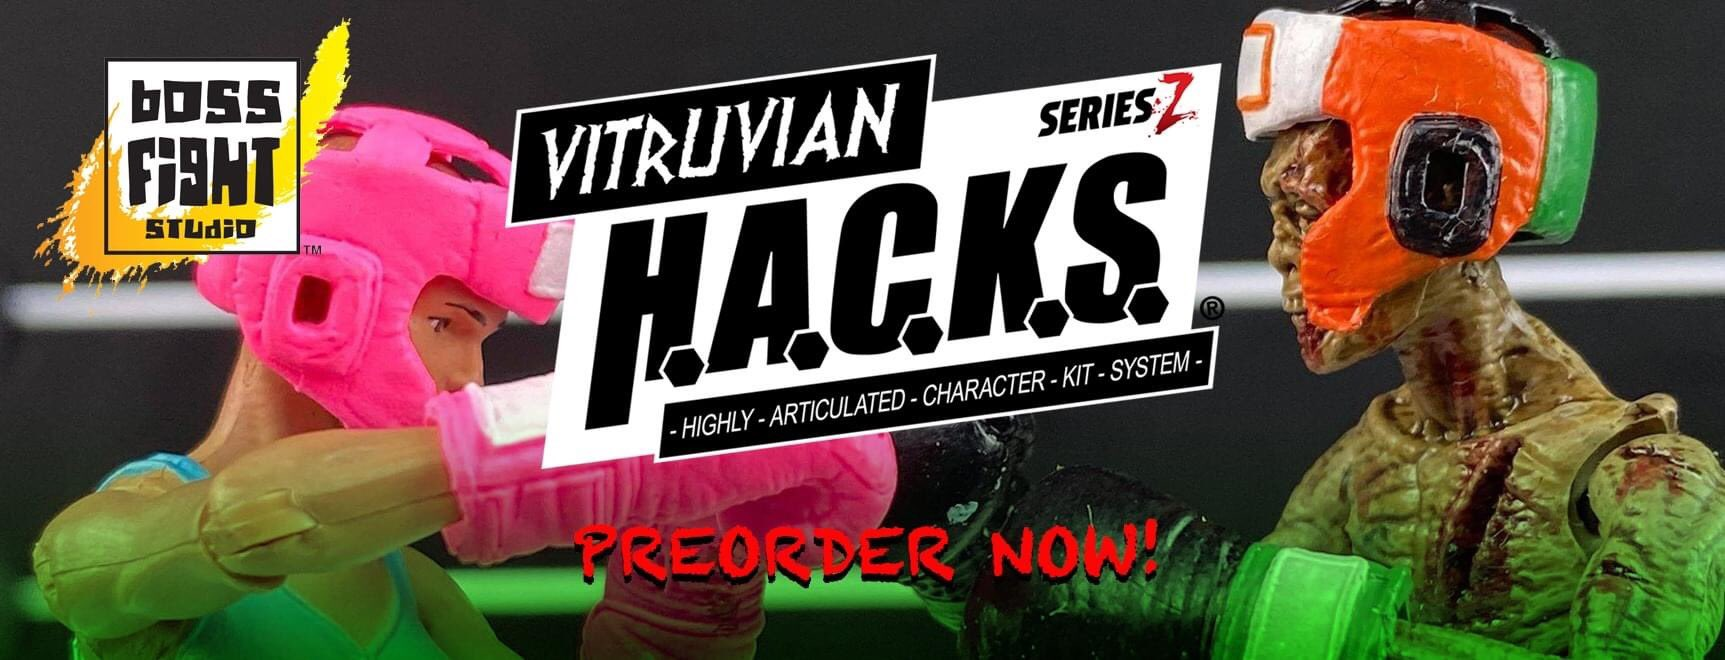 Vitruvian H.A.C.K.S. Series Z by Boss Fight Studio Available to Pre-Order